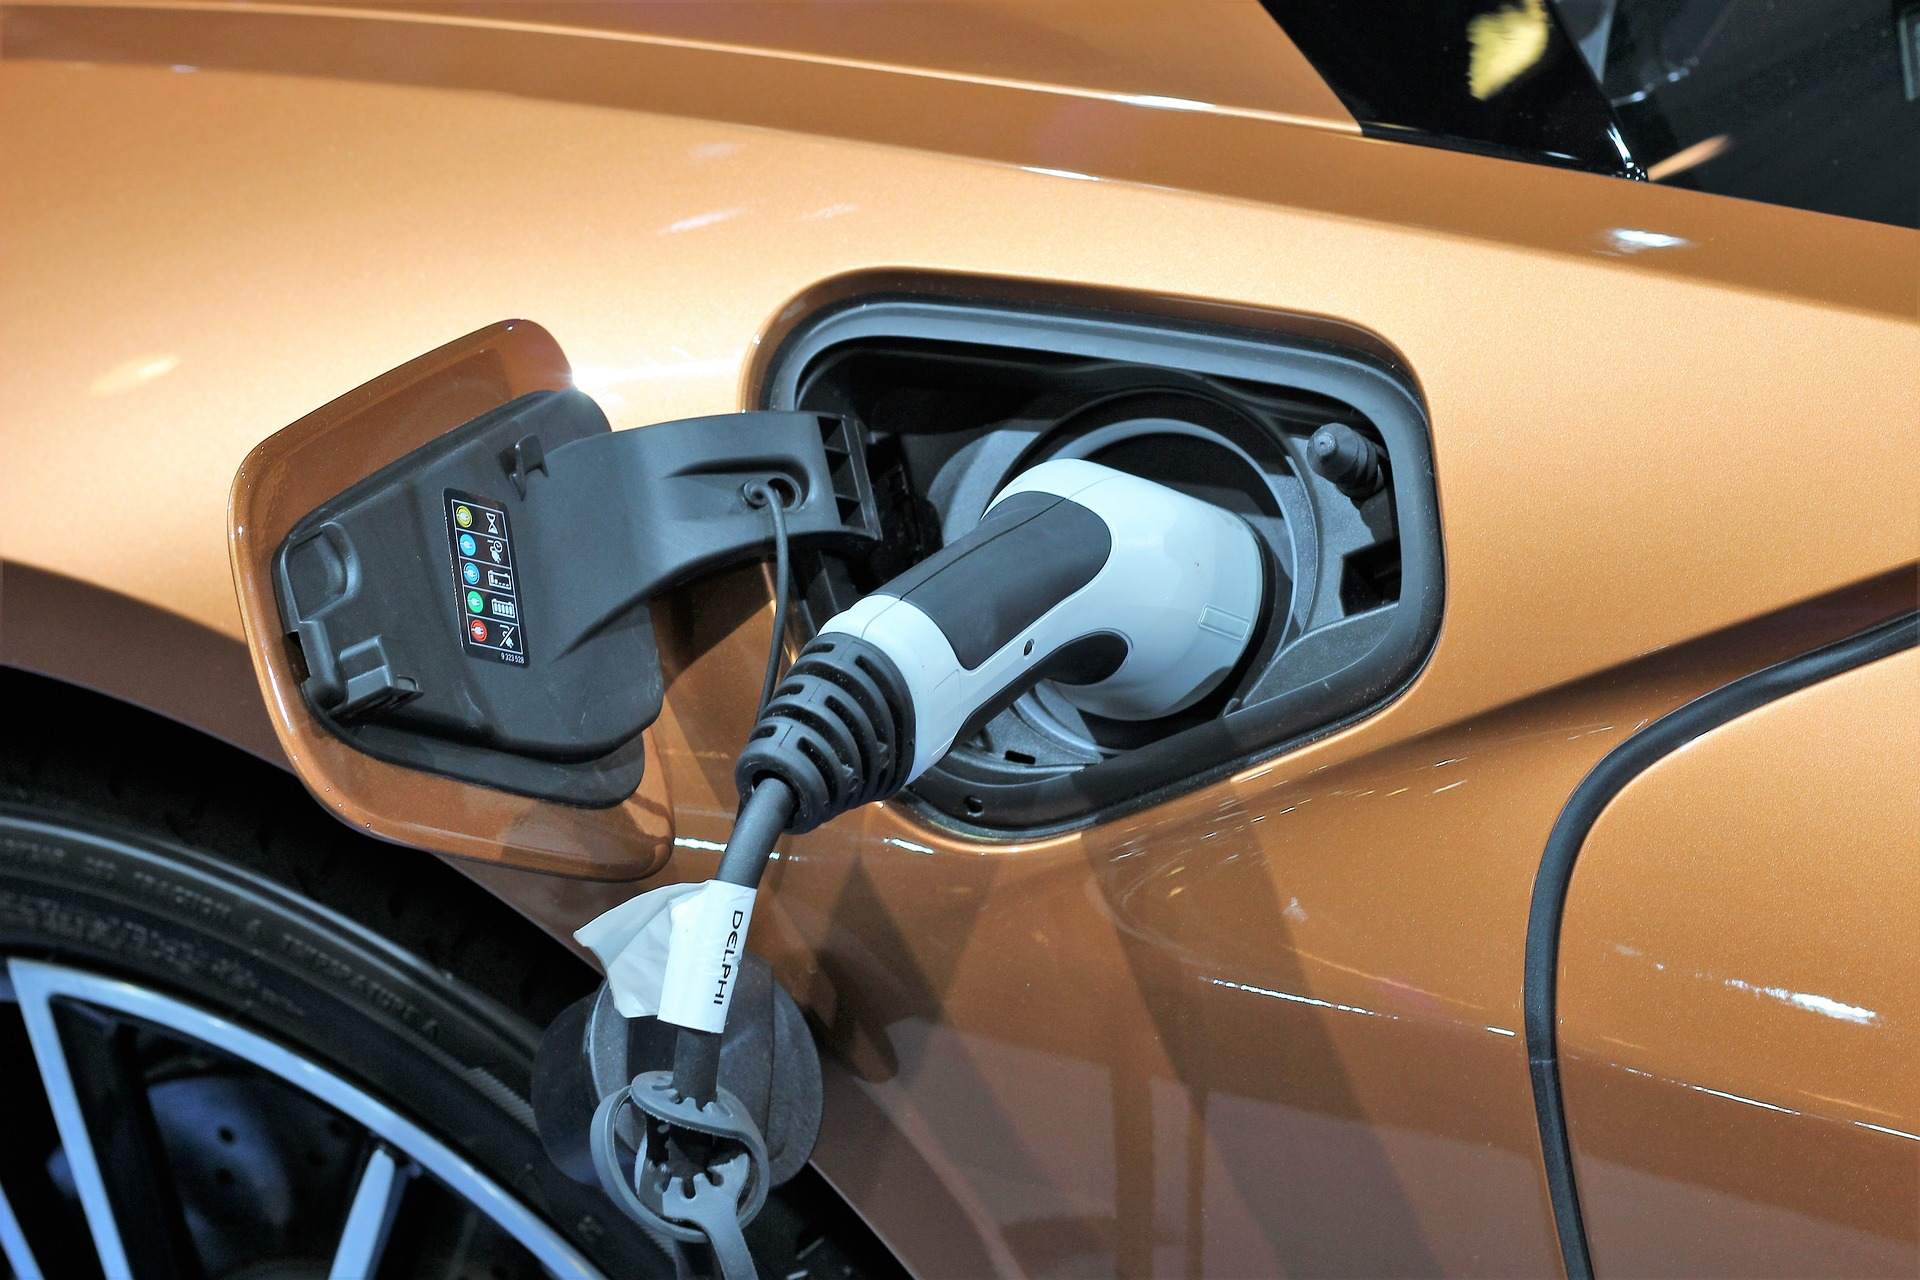 2020: The Year The World Was Electrified By Vehicles Refusing Gasoline